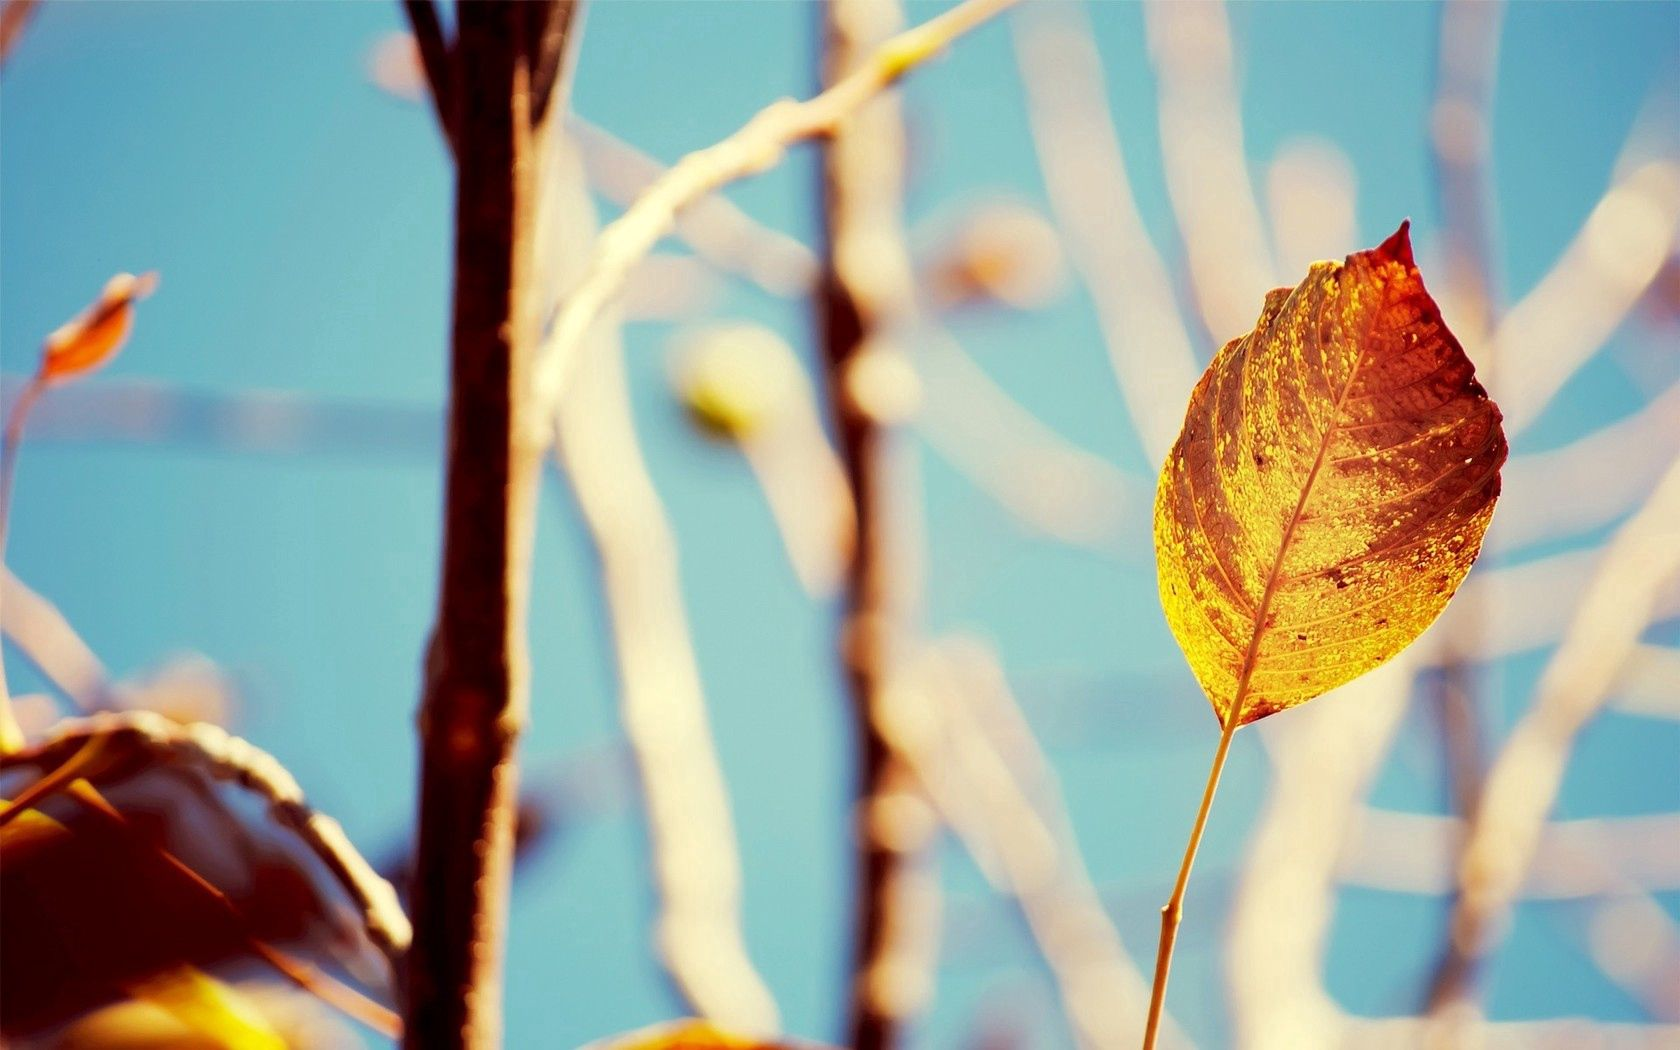 89473 download wallpaper Macro, Branches, Shine, Light, Plant, Autumn, Leaves screensavers and pictures for free